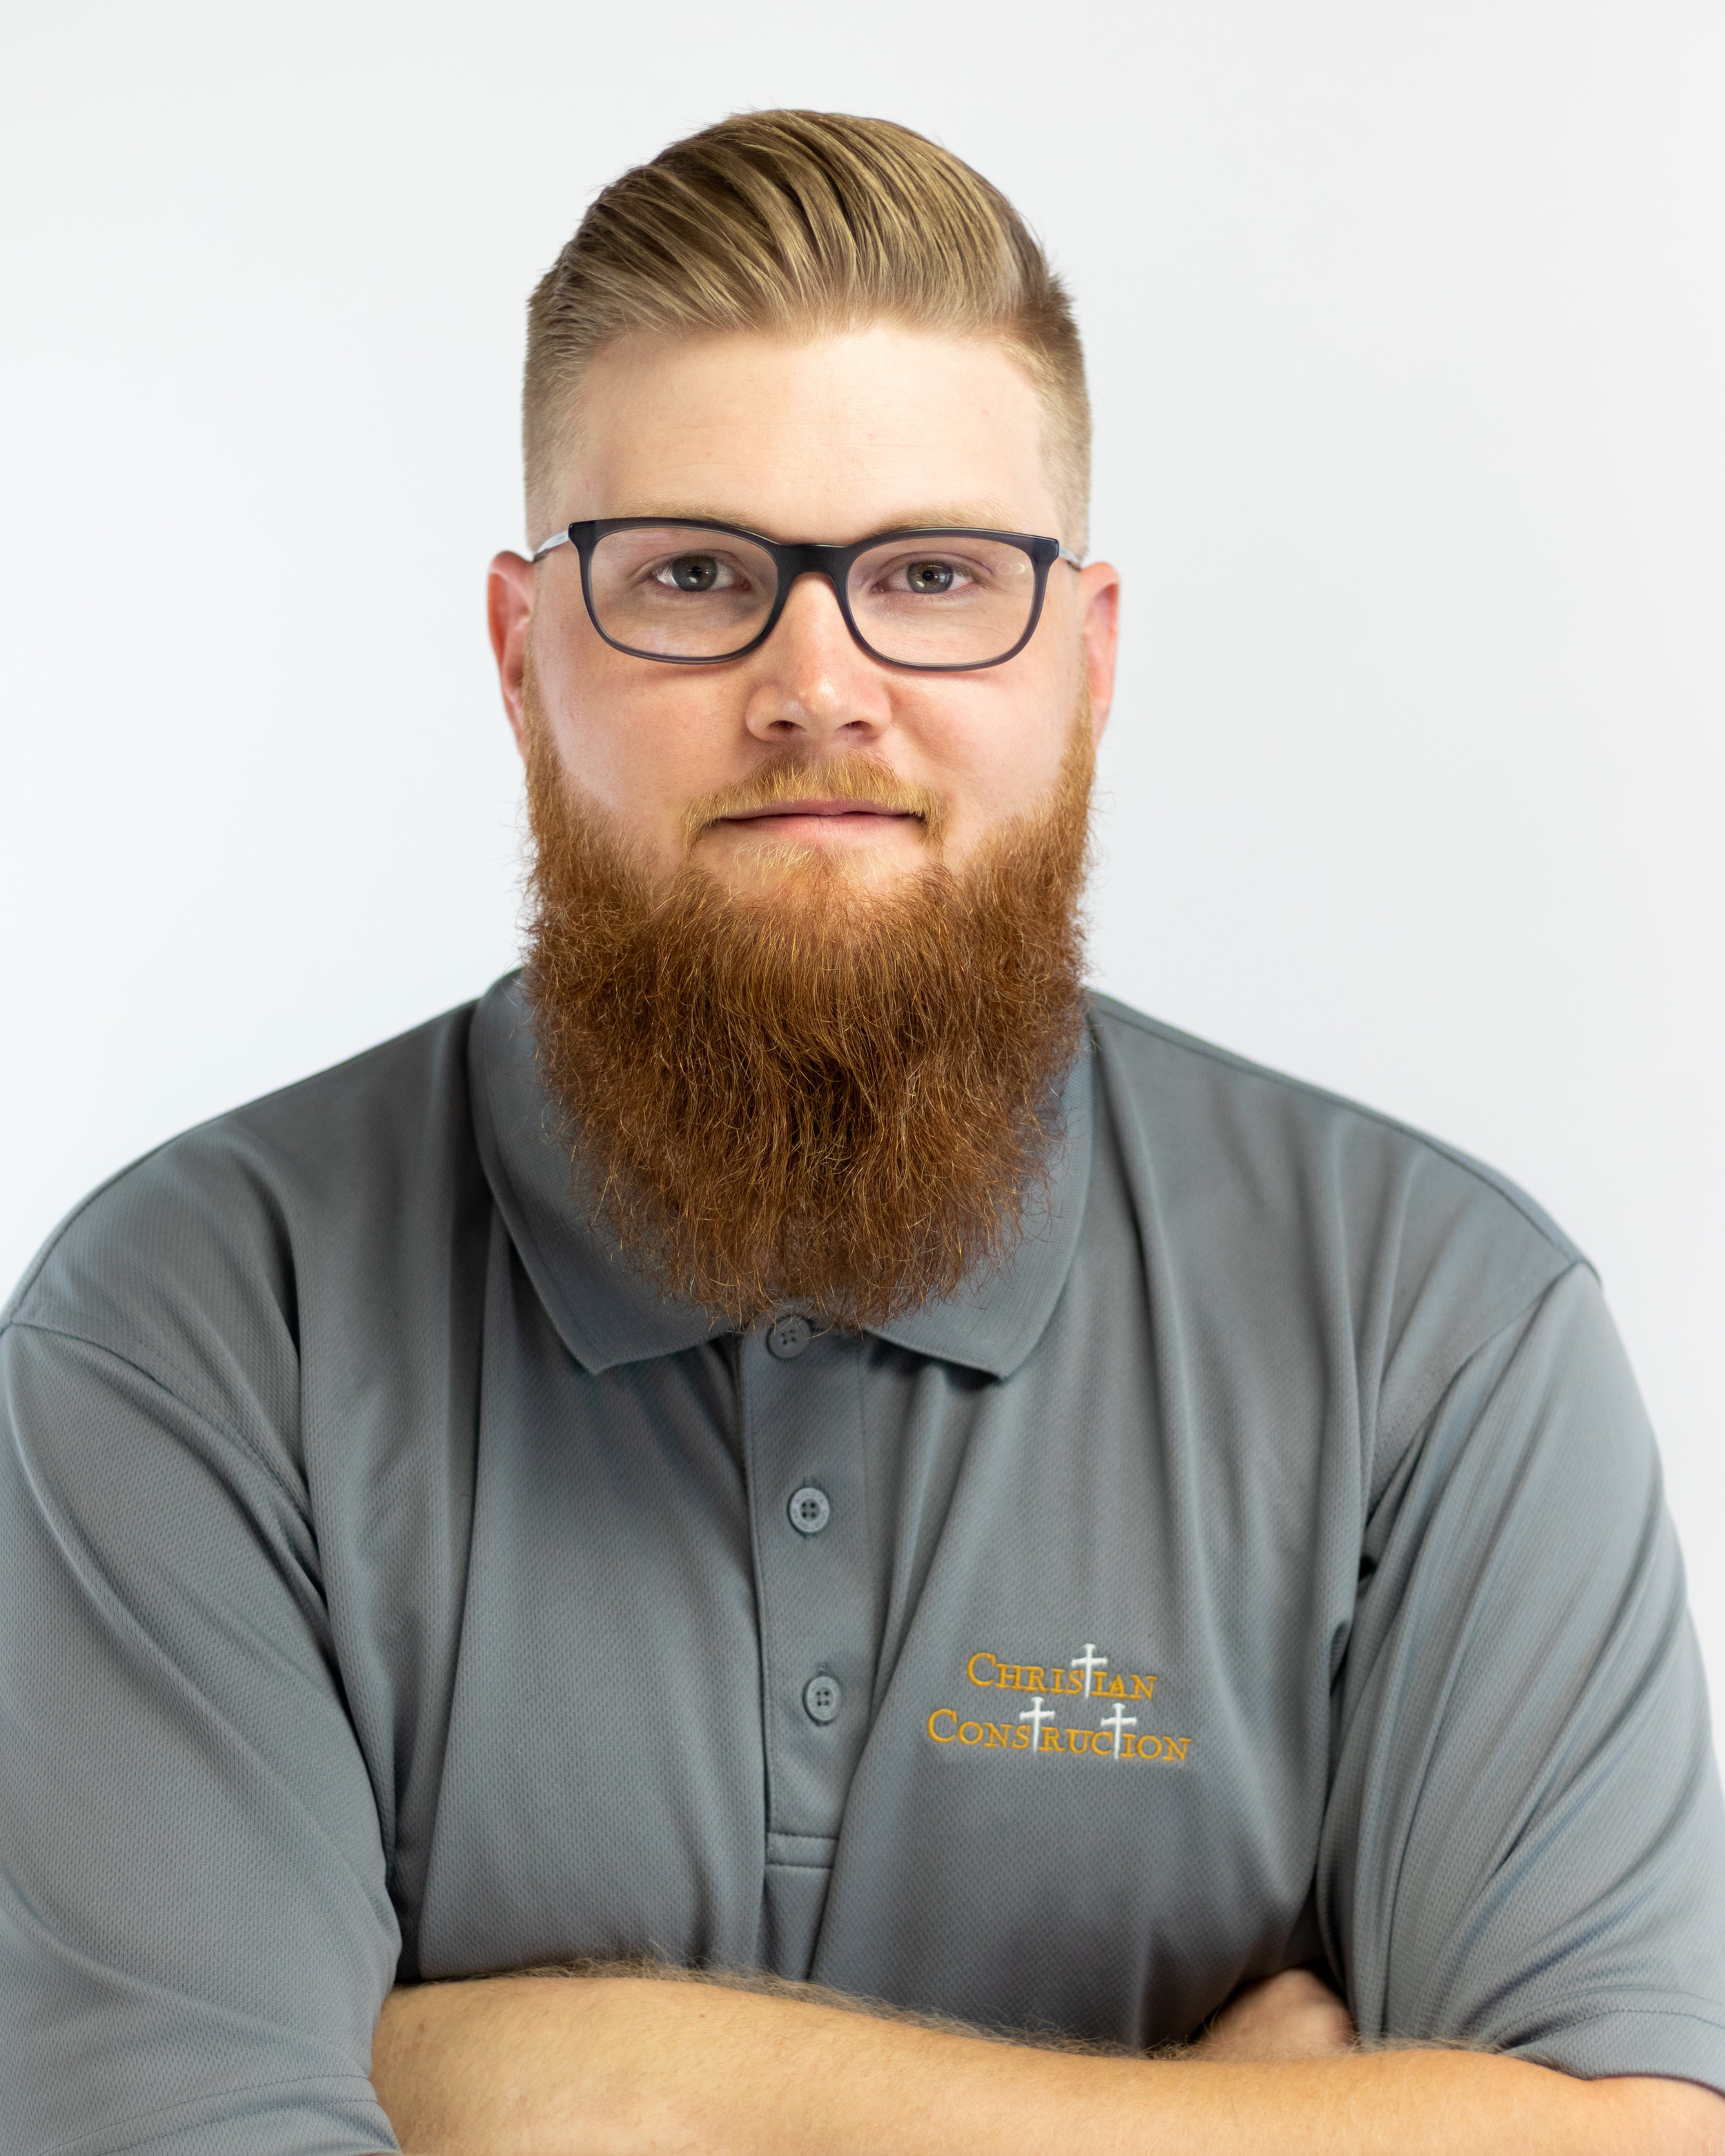 Tyler Gardner - I enjoy spending time with family and working with my team. I have a passion for growing our business and being a resource for the work of the kingdom. I'm a husband, father, and a business owner (in that order).